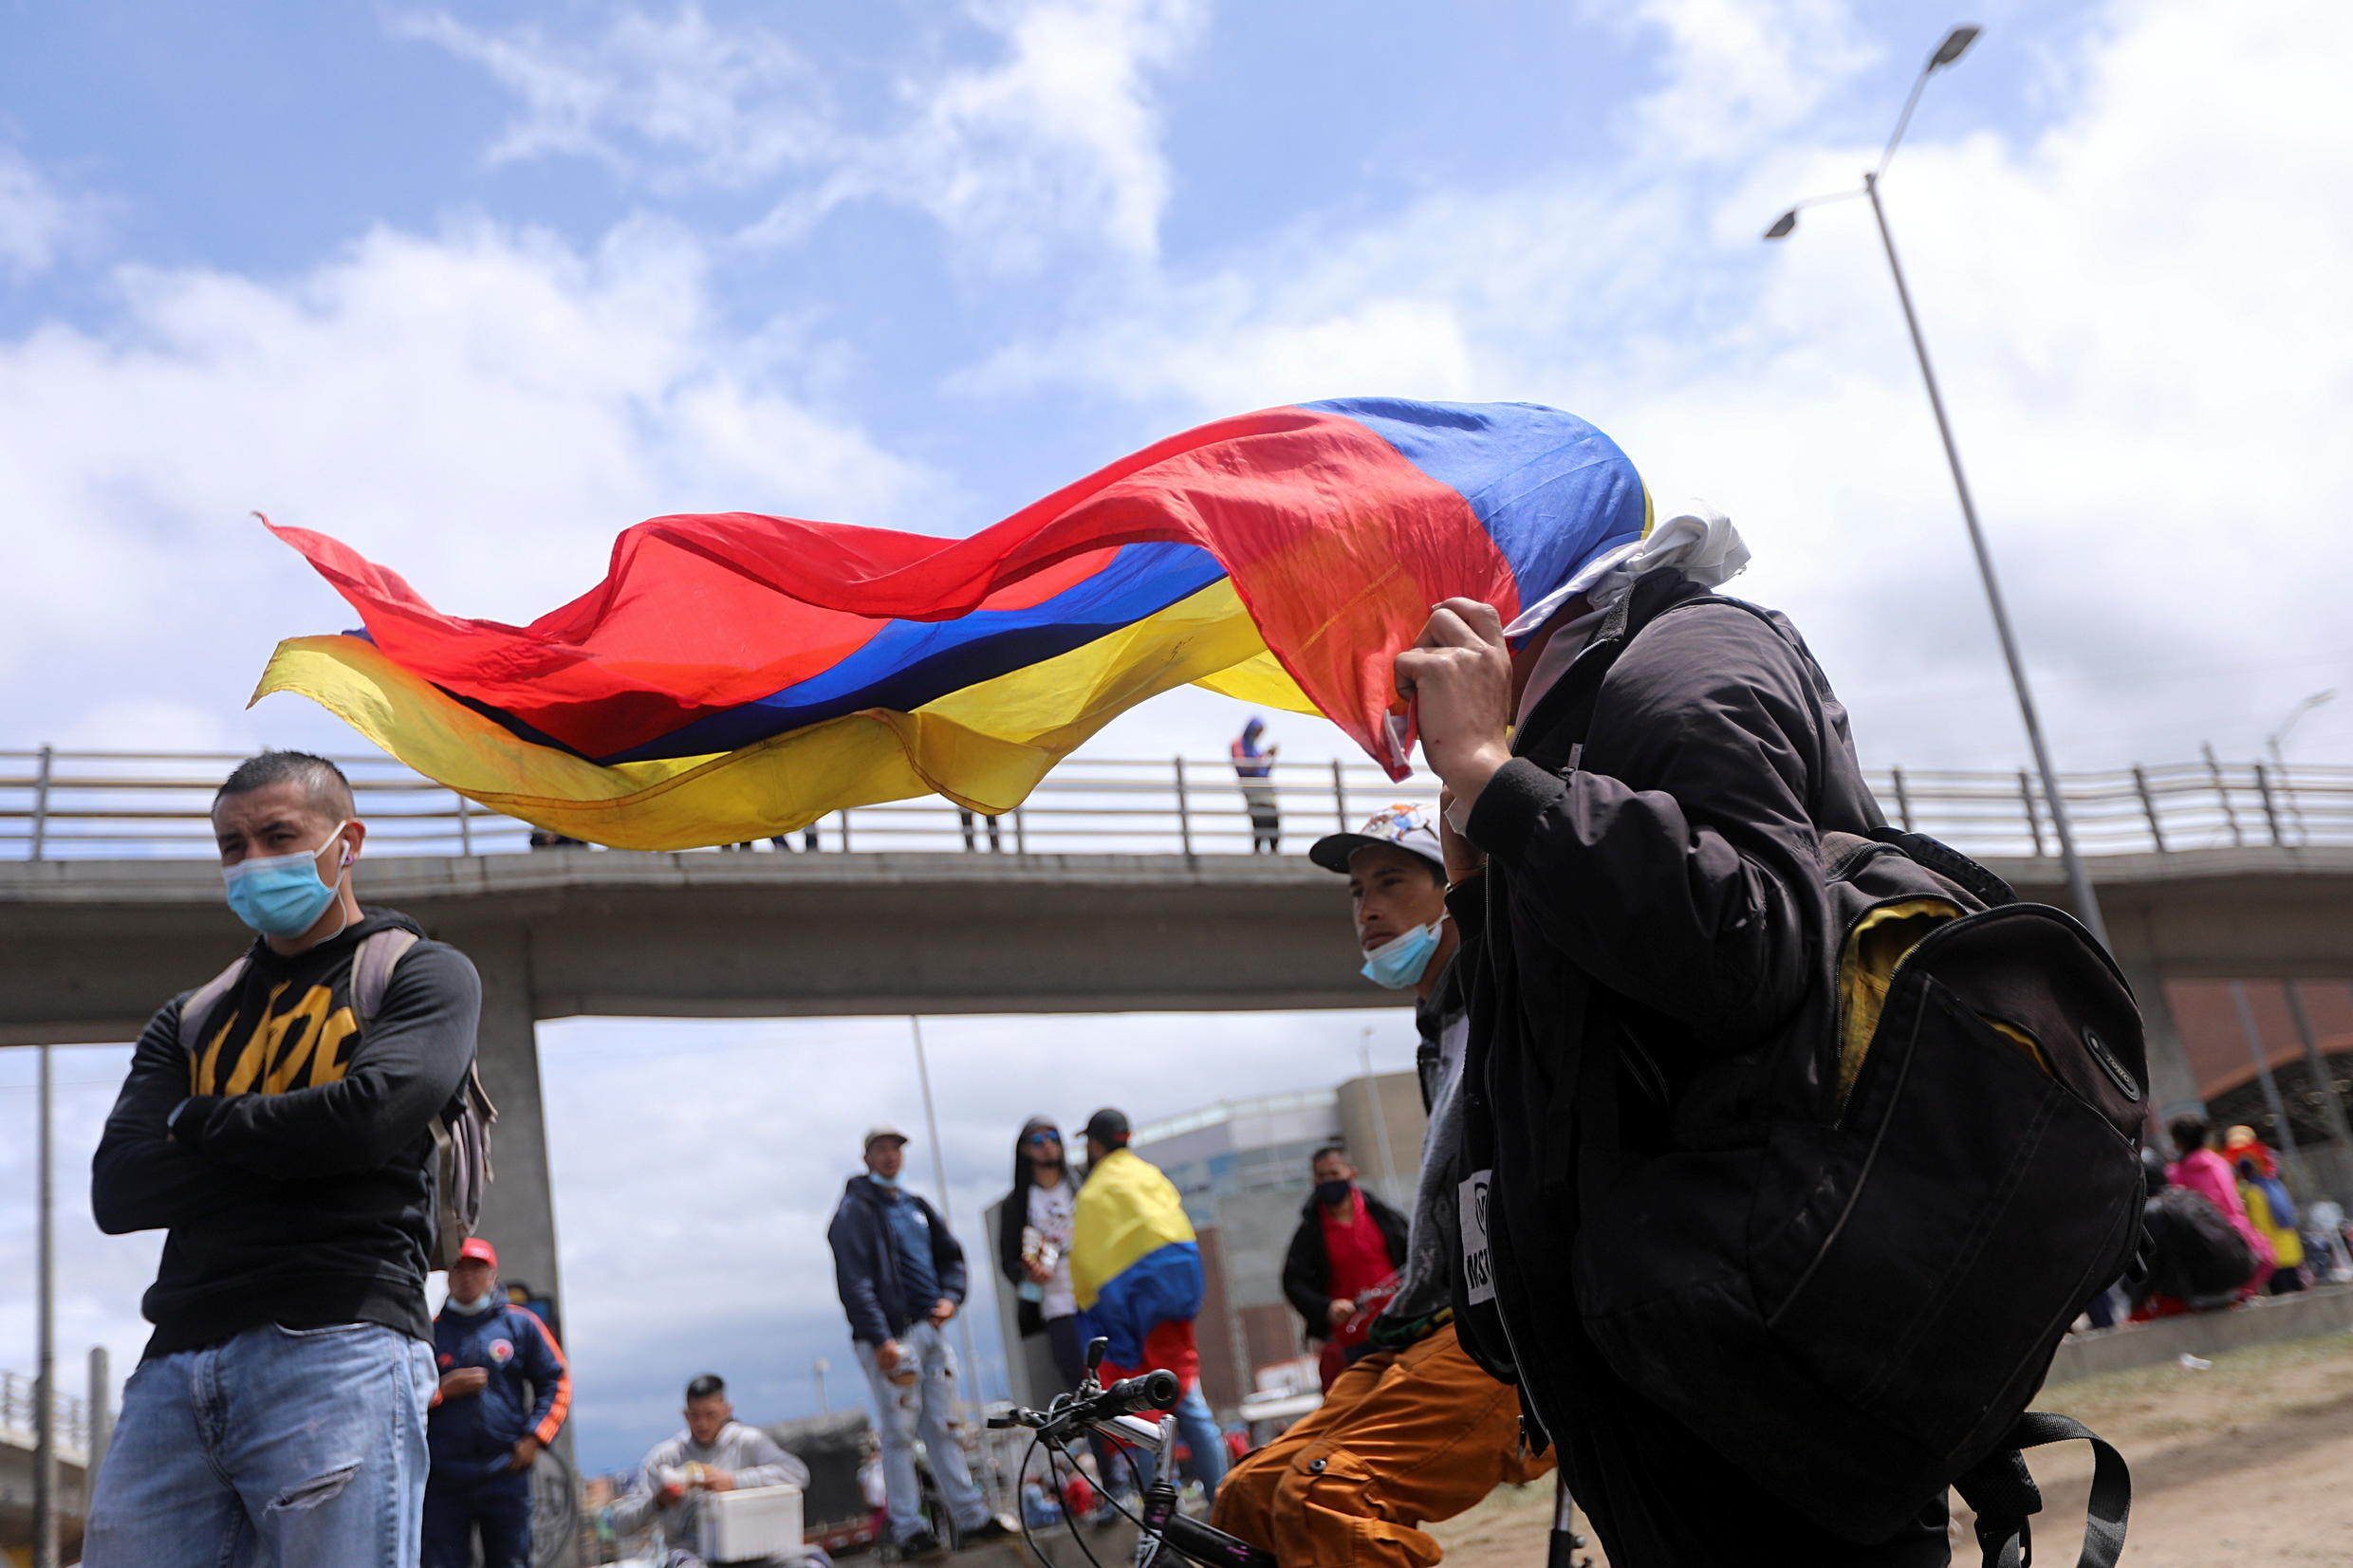 2021-05-24T214259Z_60504774_RC2FMN9YP373_RTRMADP_3_COLOMBIA-PROTESTS